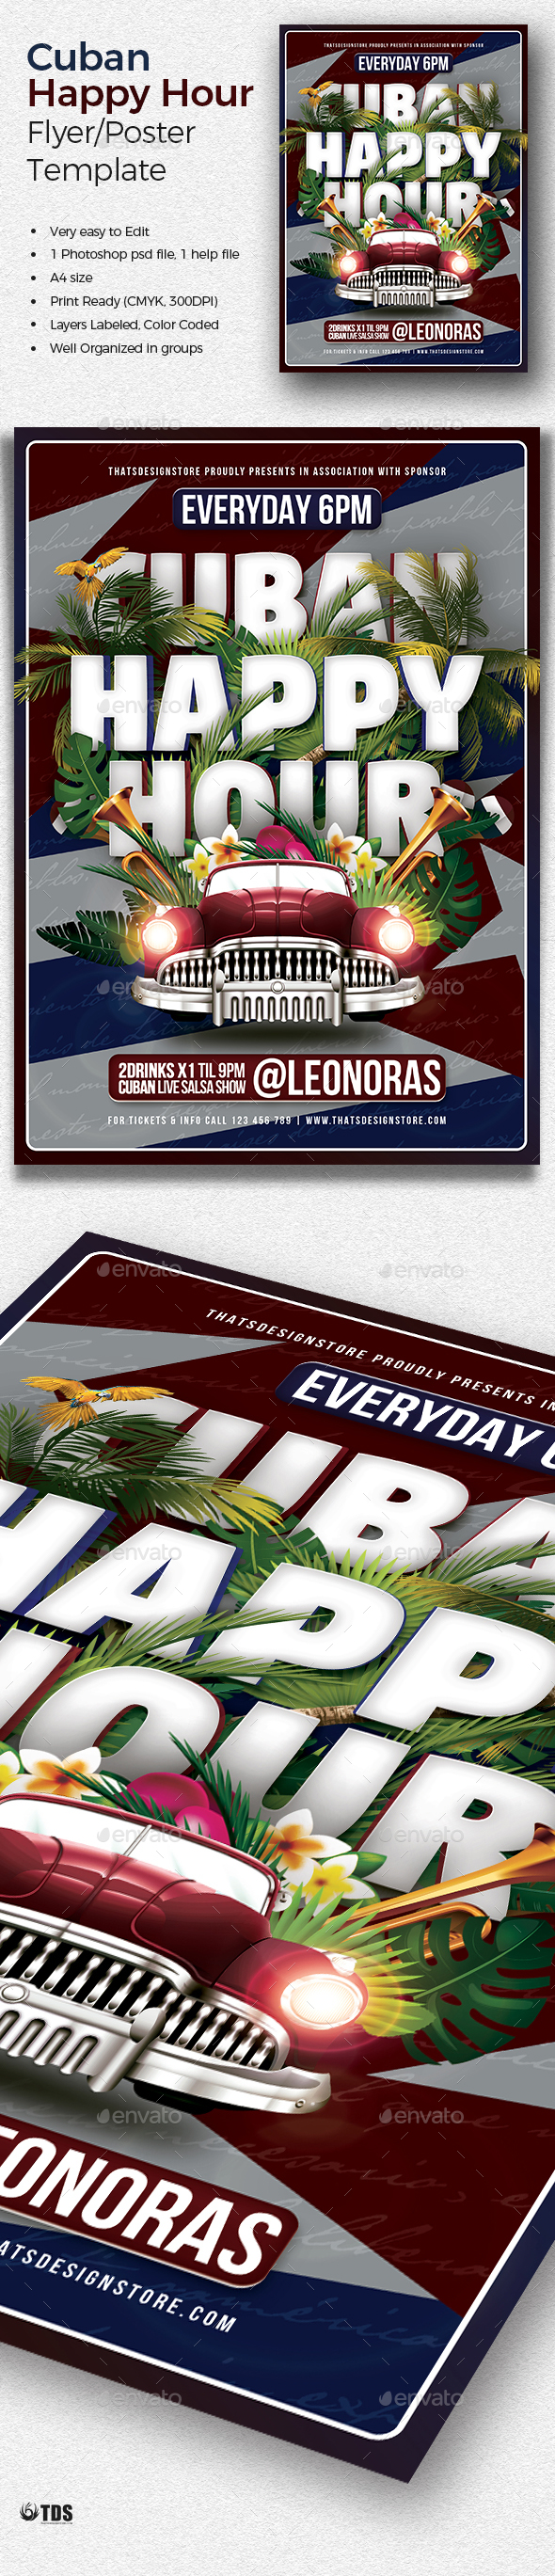 Cuban Happy Hour Flyer Template - Clubs & Parties Events